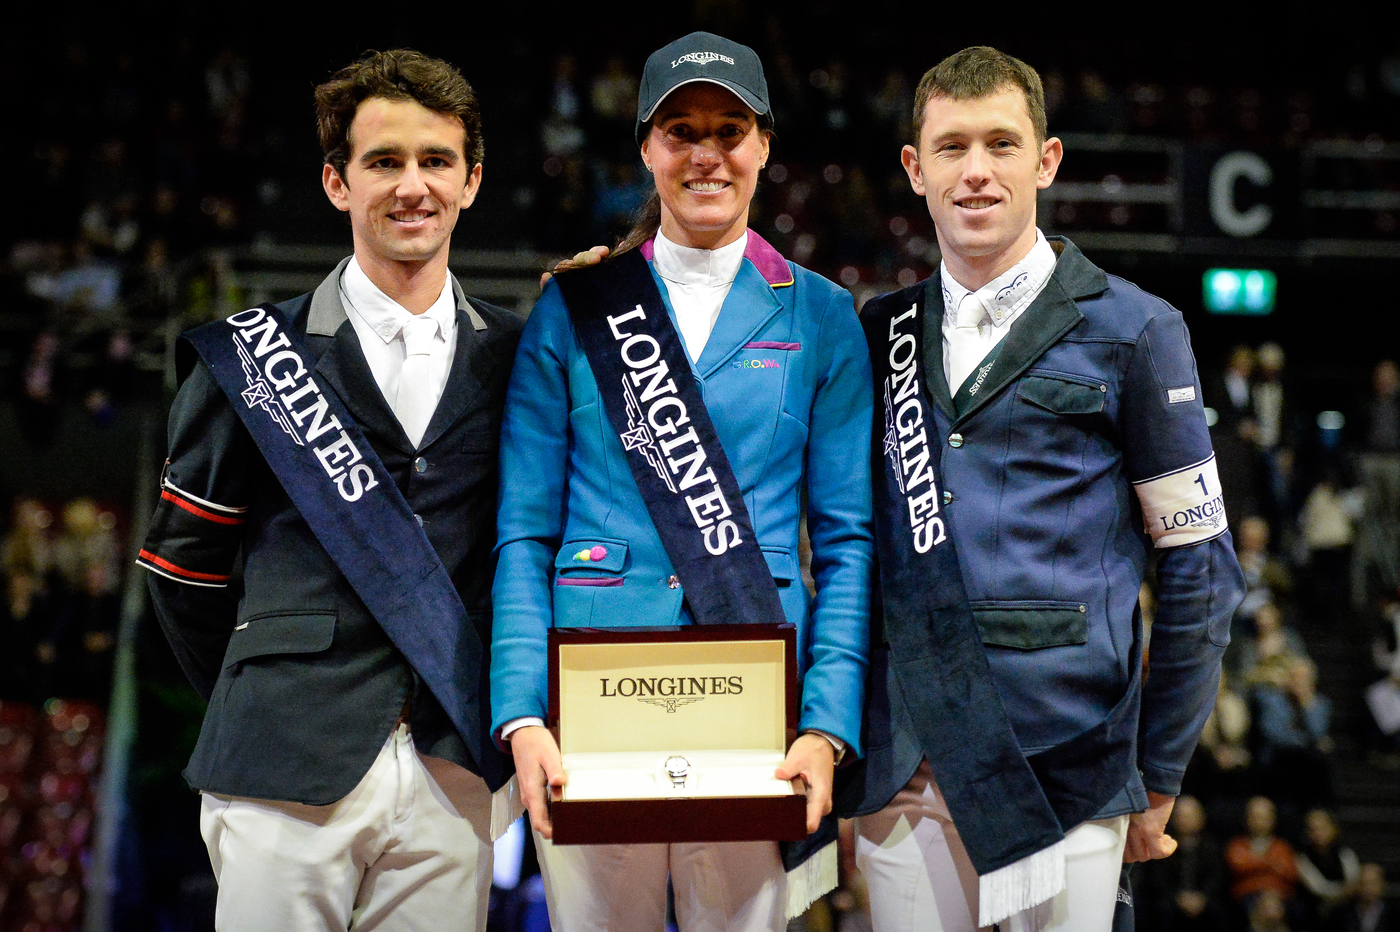 Longines Show Jumping Event: Luciana Diniz (POR) wins the Longines Grand Prix of the Longines CSI Basel 5